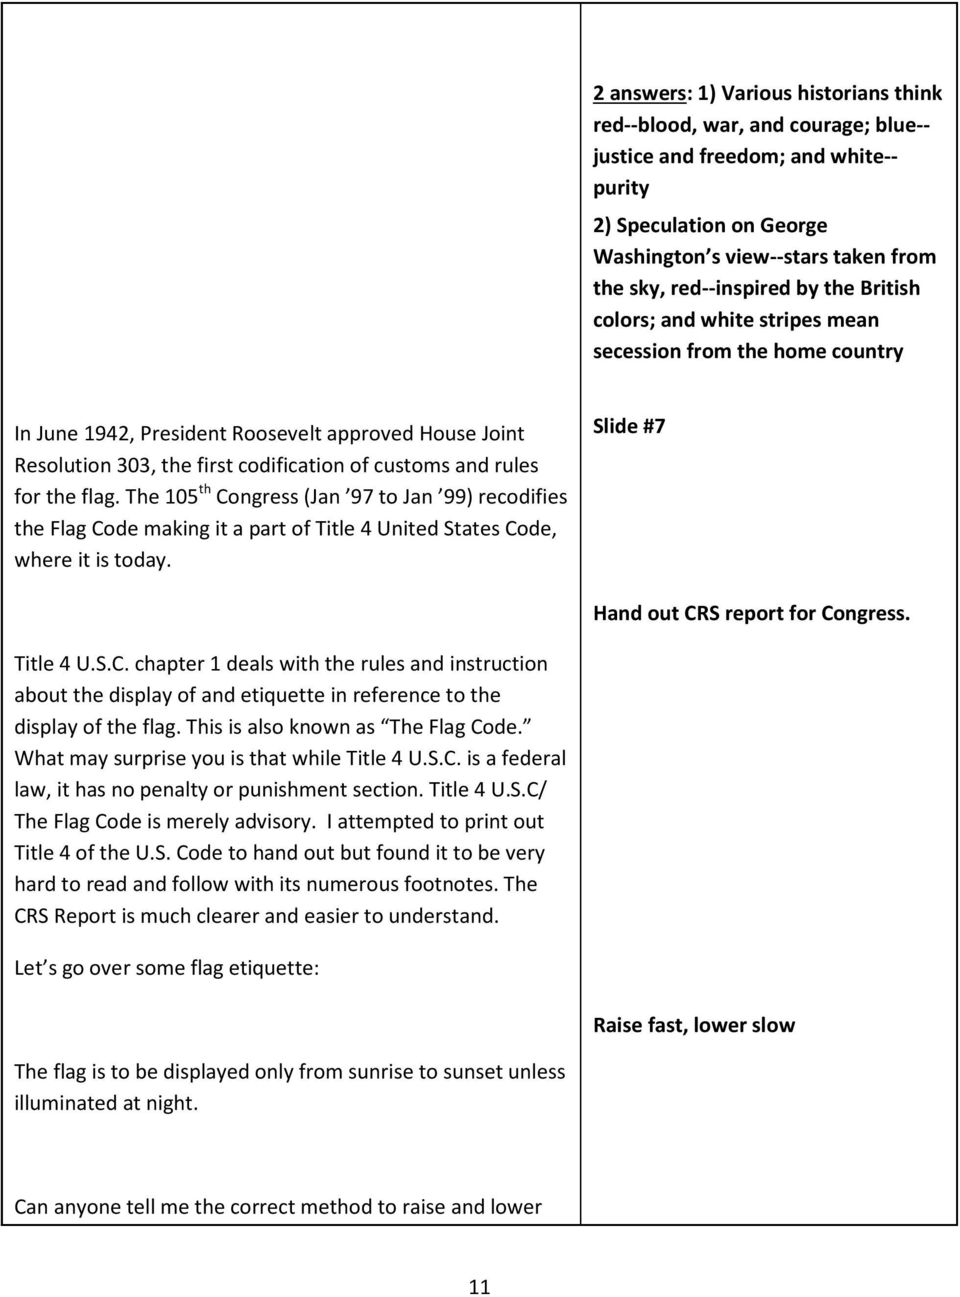 the flag. The 105 th Congress (Jan 97 to Jan 99) recodifies the Flag Code making it a part of Title 4 United States Code, where it is today. Slide #7 Hand out CRS report for Congress. Title 4 U.S.C. chapter 1 deals with the rules and instruction about the display of and etiquette in reference to the display of the flag.